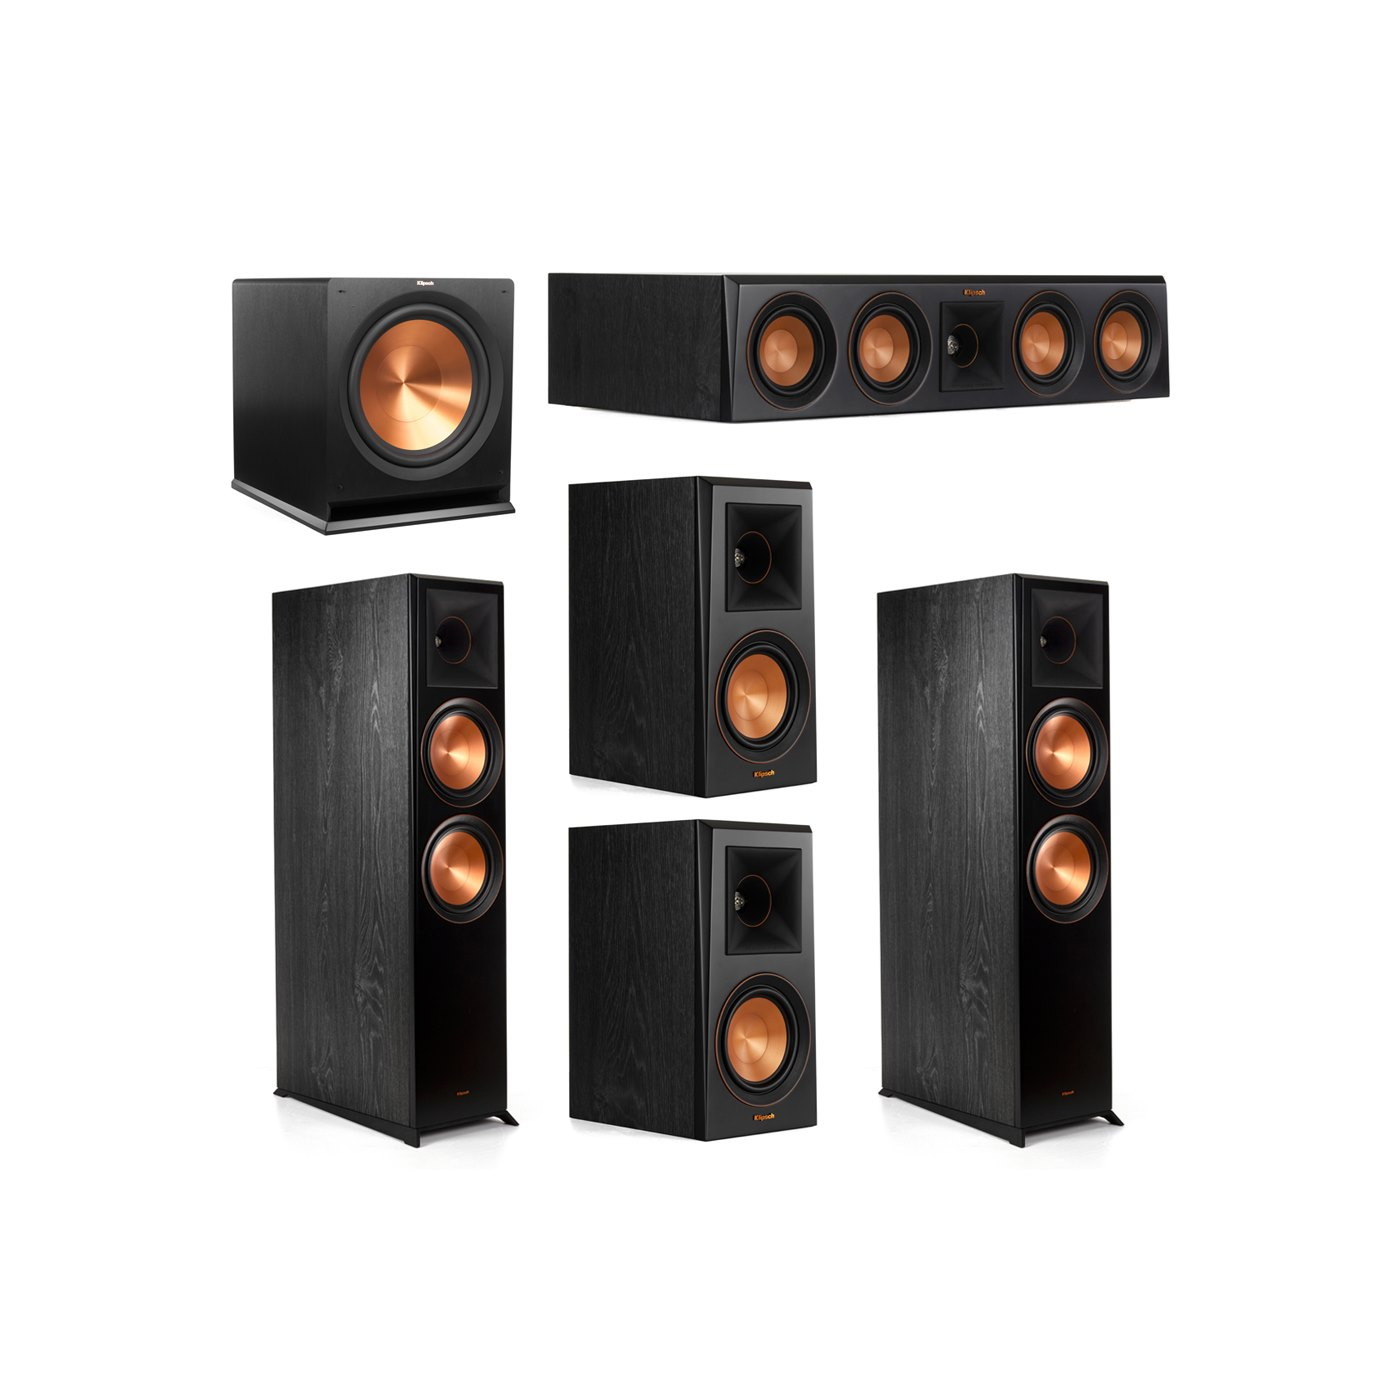 Klipsch 5.1.2 System - 2 RP-8060FA Dolby Atmos Speakers, 1 RP-404C, 2 RP-500M Speakers, 1 R-115SW